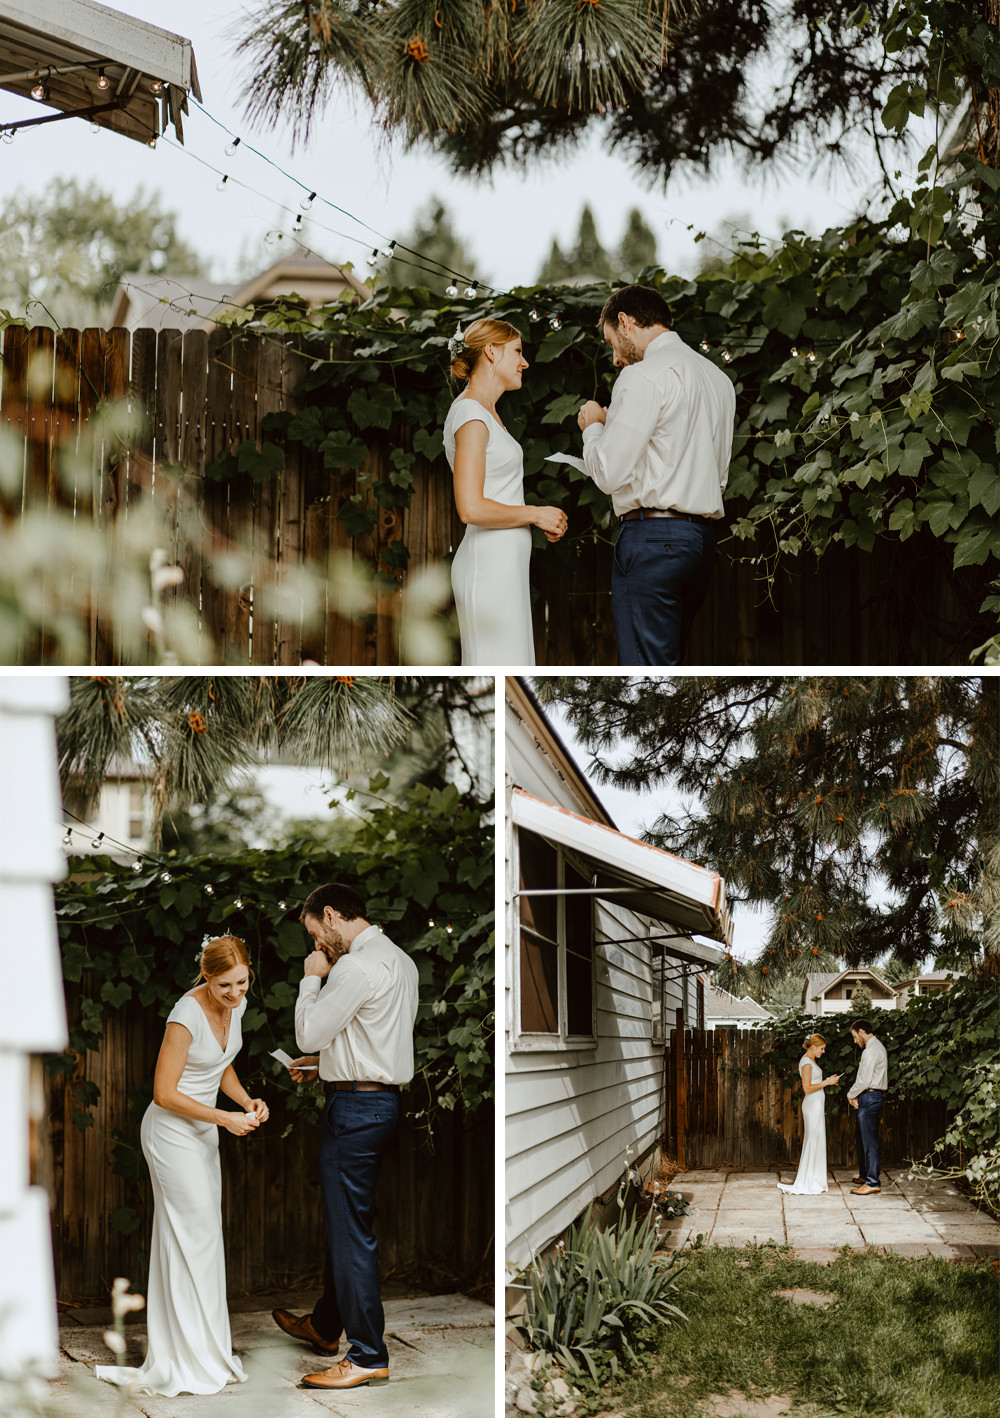 Hillary and Will standing in a corner of their backyard sharing their vows privately.